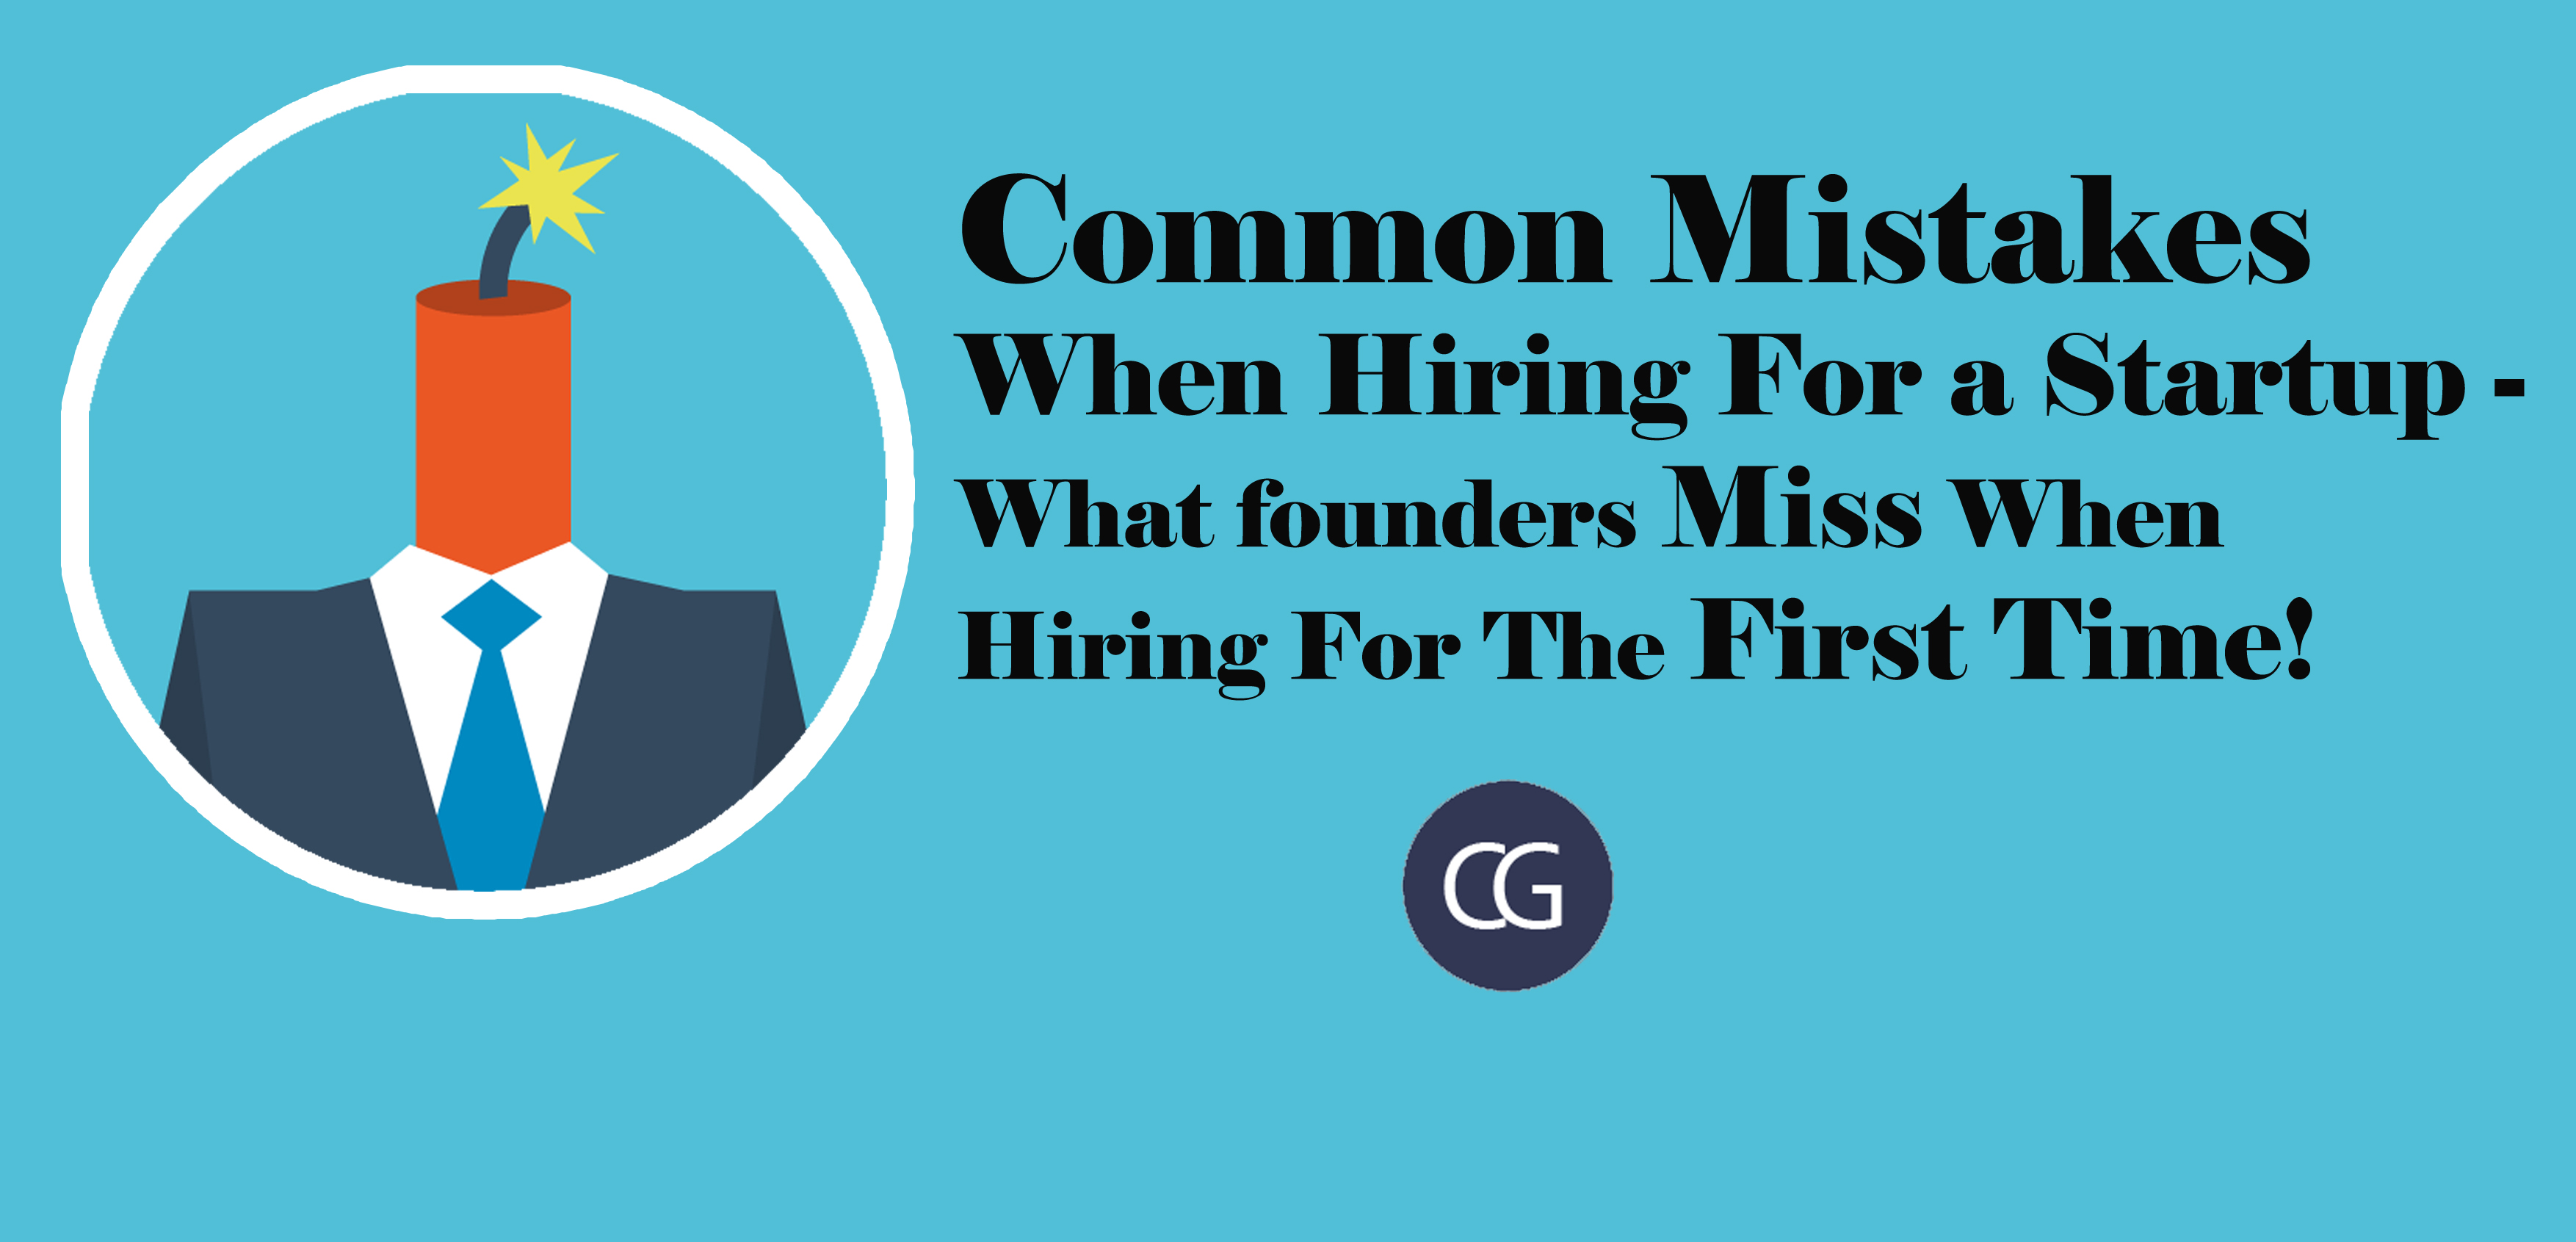 Common Mistakes When Hiring For a Startup